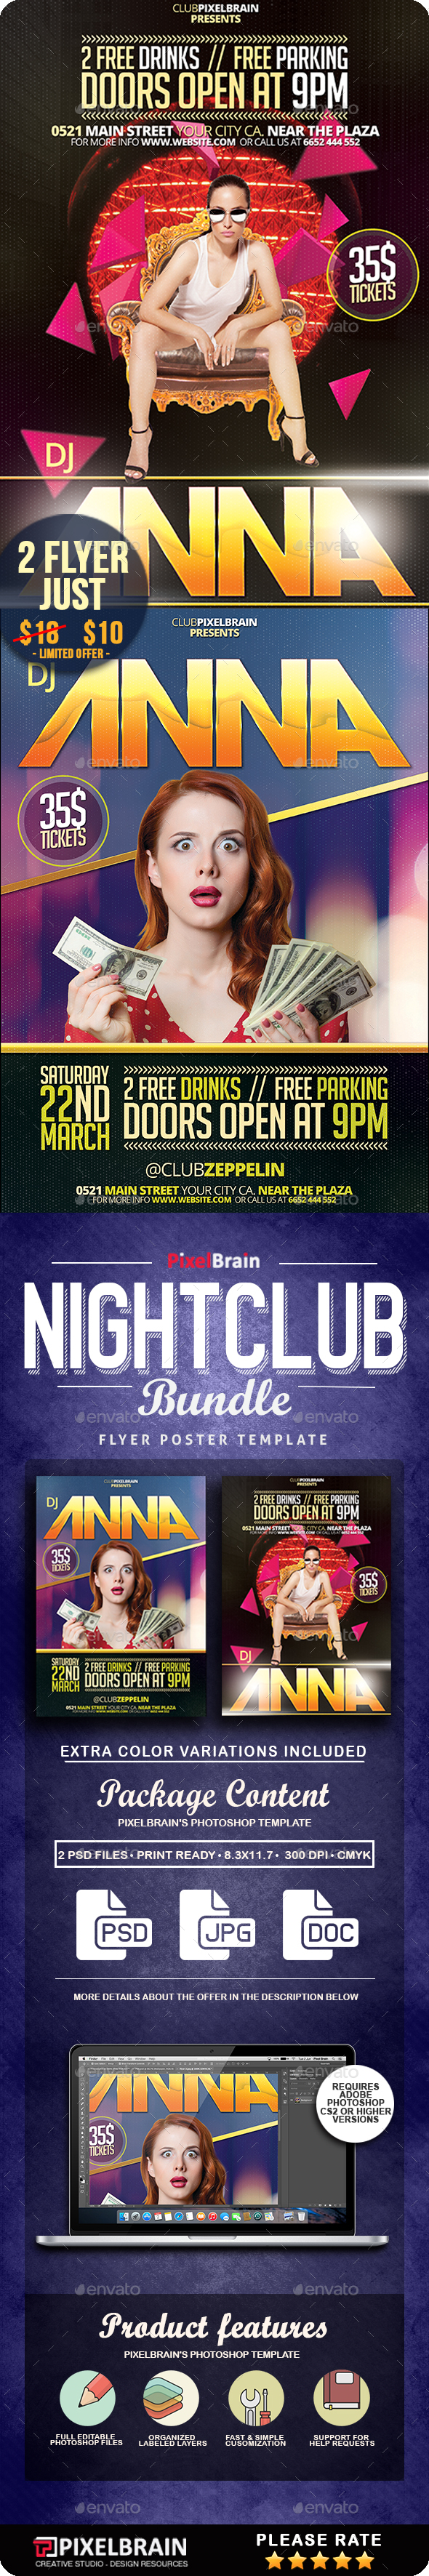 Nightclub Party Flyer/Poster 2 PSD Vol. 1 - Clubs & Parties Events